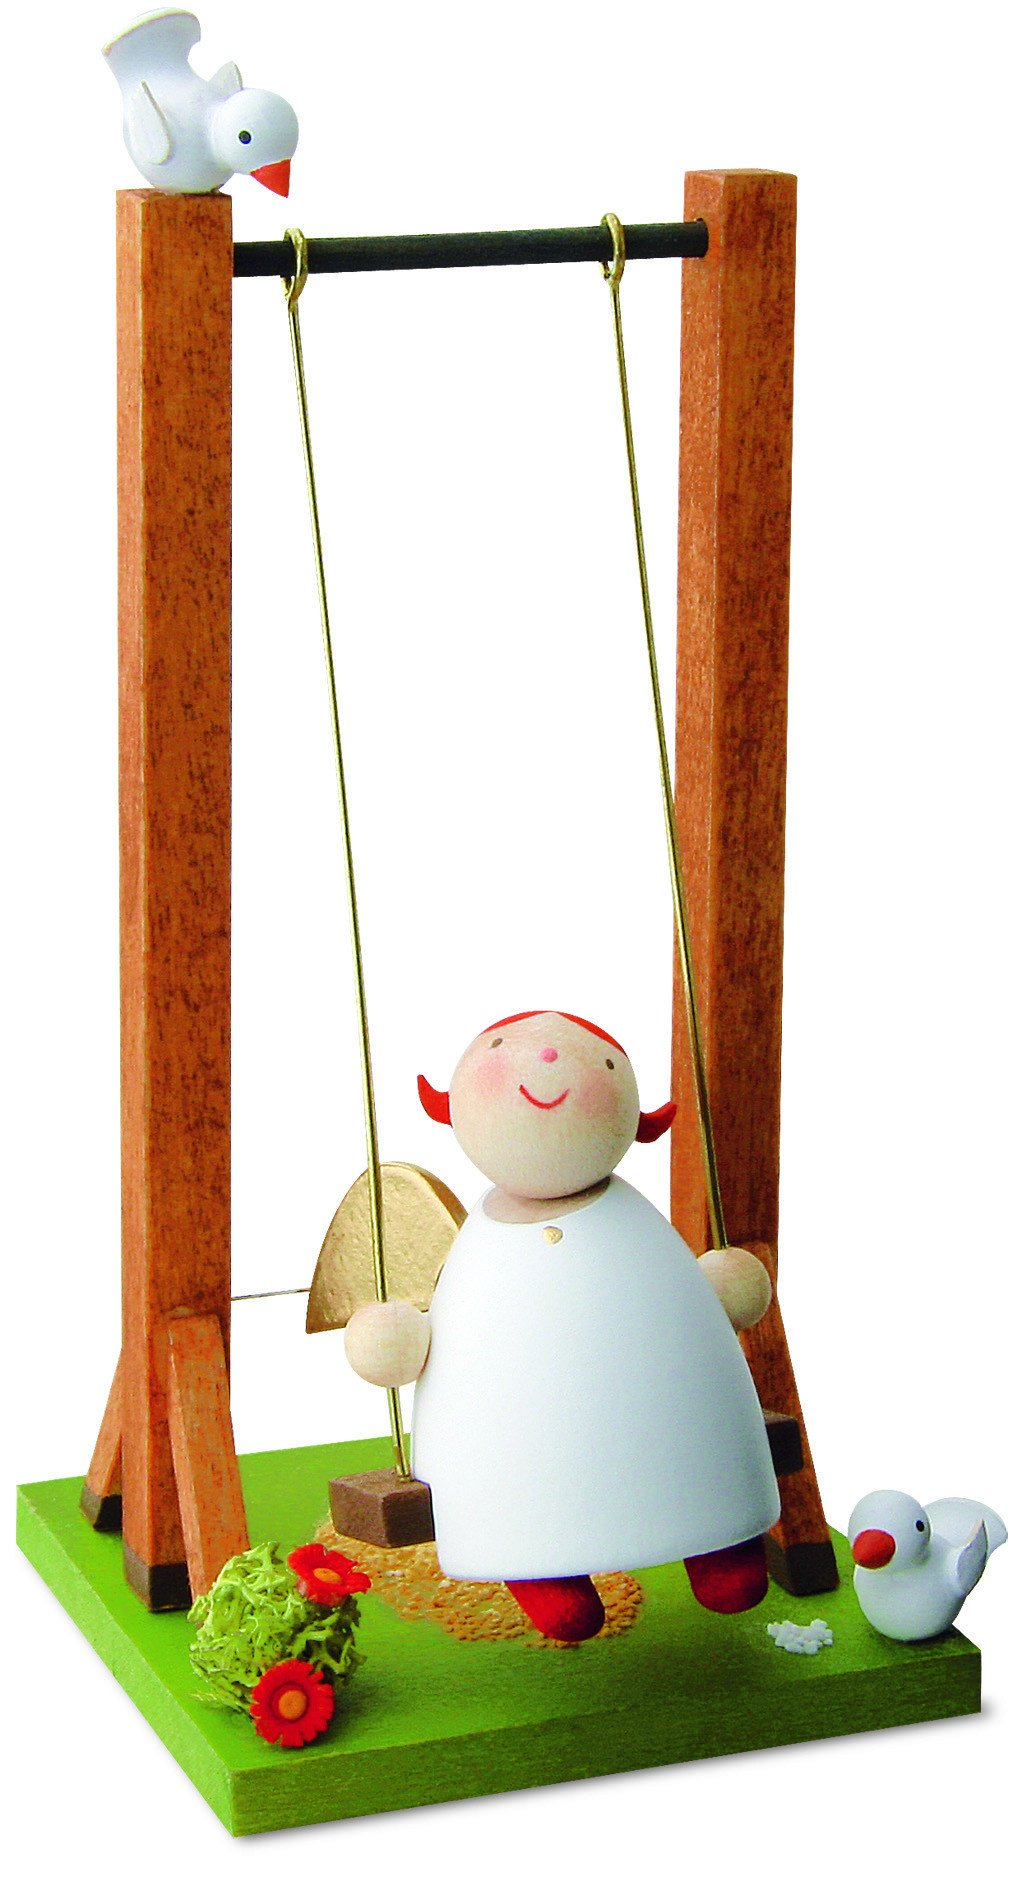 Little Angel Figurine - Guardian Angel on a Swing